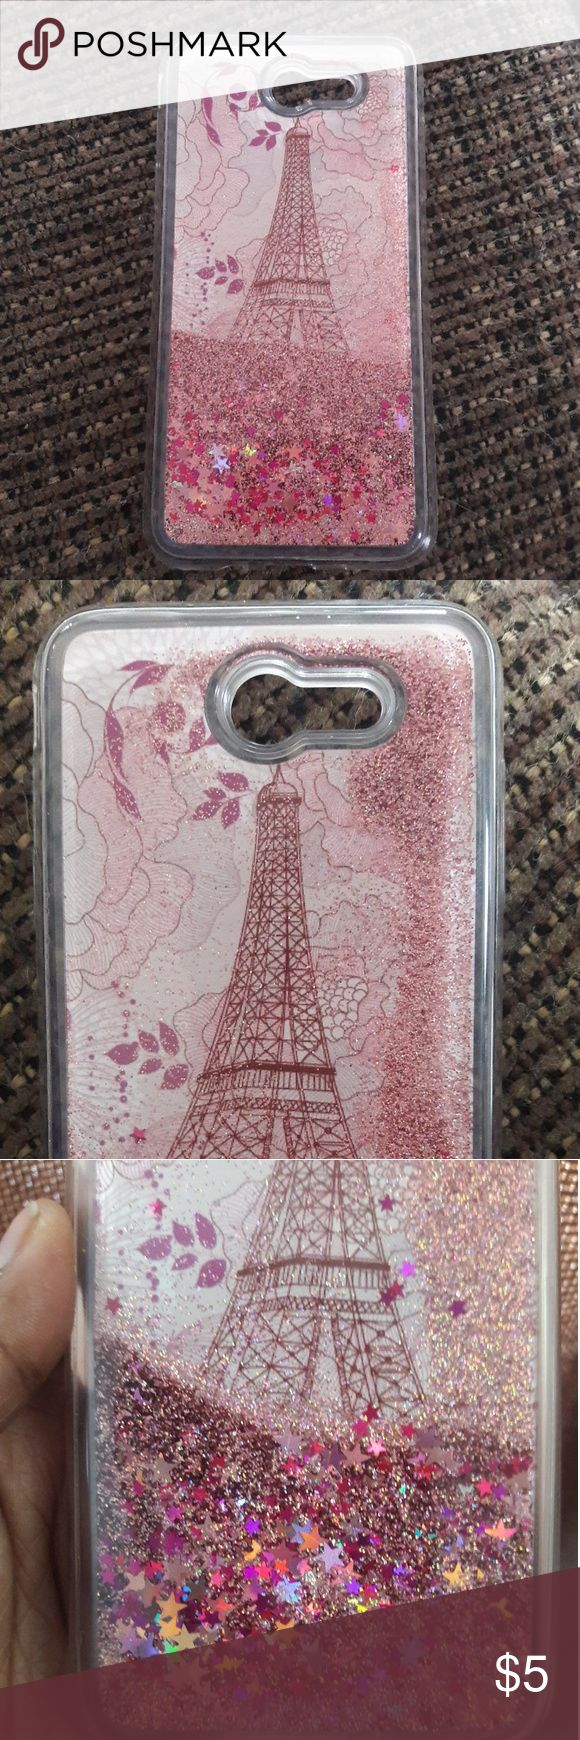 Snow Globe Case for Samsung J7 Phone Eiffel tower and glitter case for Samsung J7. Clear case with pink and fuchsia glitter and star confetti. Good condition. Accessories Phone Cases